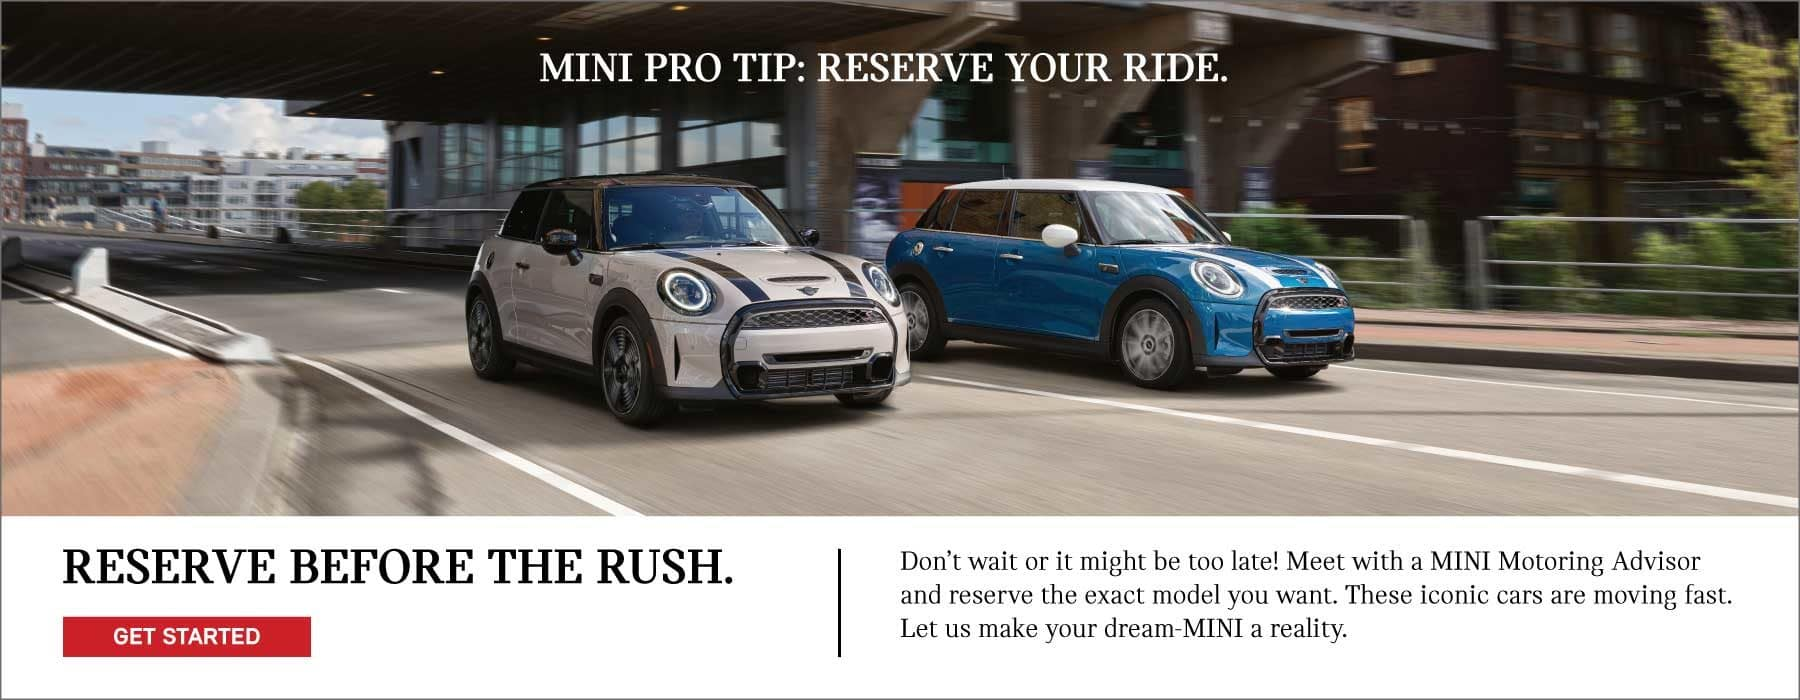 Rserve your MINI now before the rush!